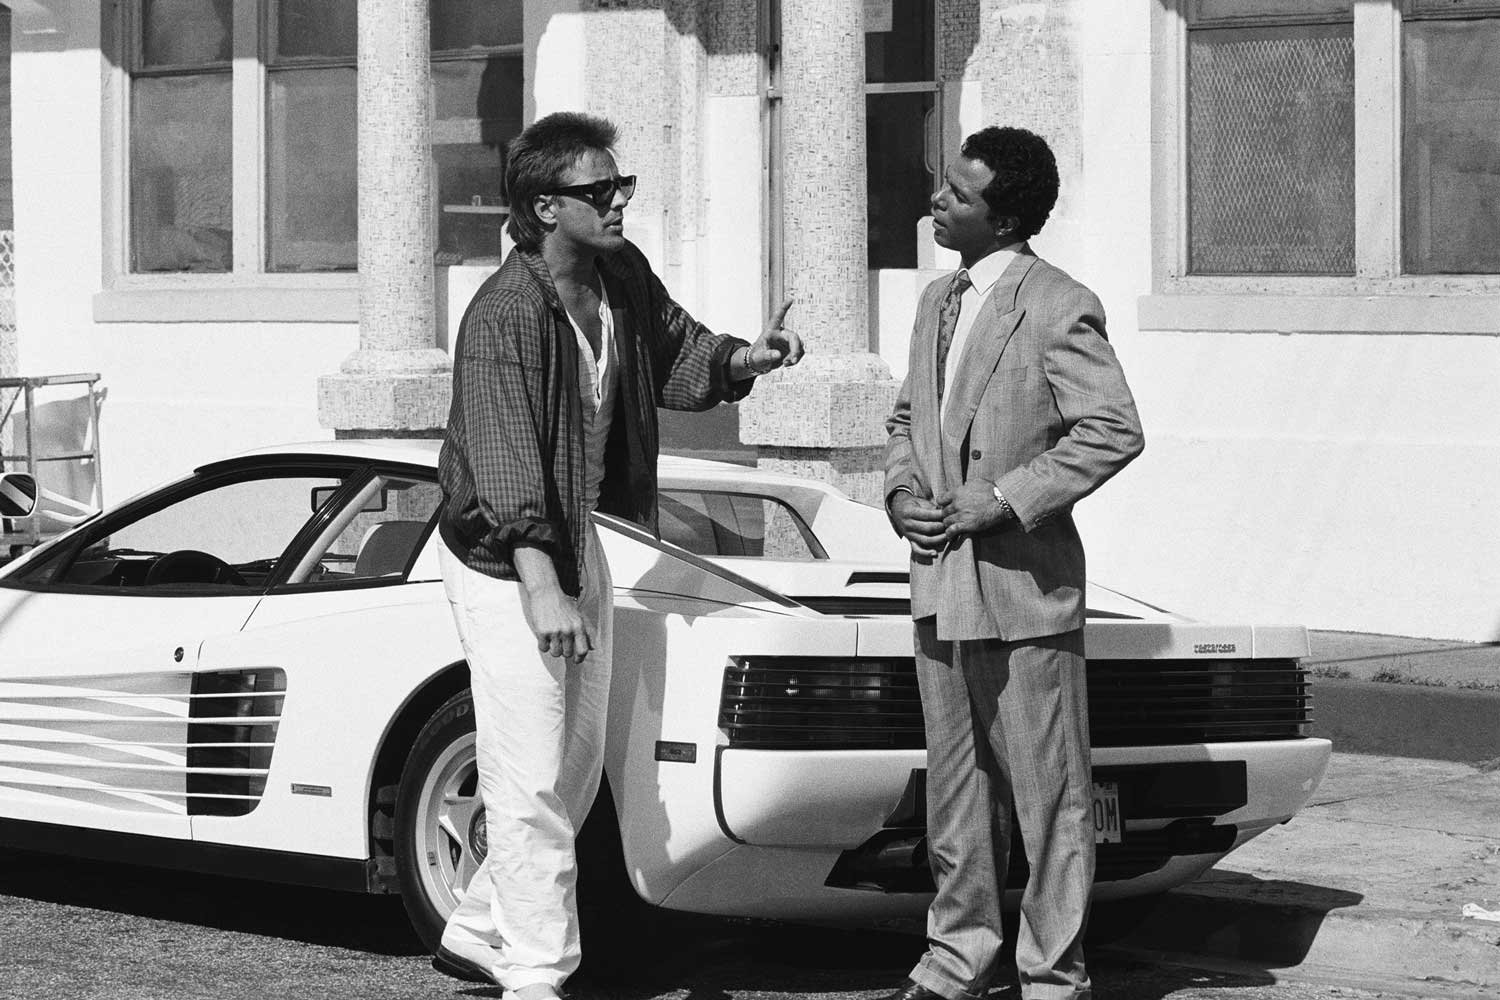 Fake it 'til you make it! 'Fauxrrari' and 'Fauxlex' before Ebel and Ferrari stepped in. The original episodes featured a converted Corvette masquerading as a Ferrari Daytona and Sonny donned a fake yellow gold Rolex!